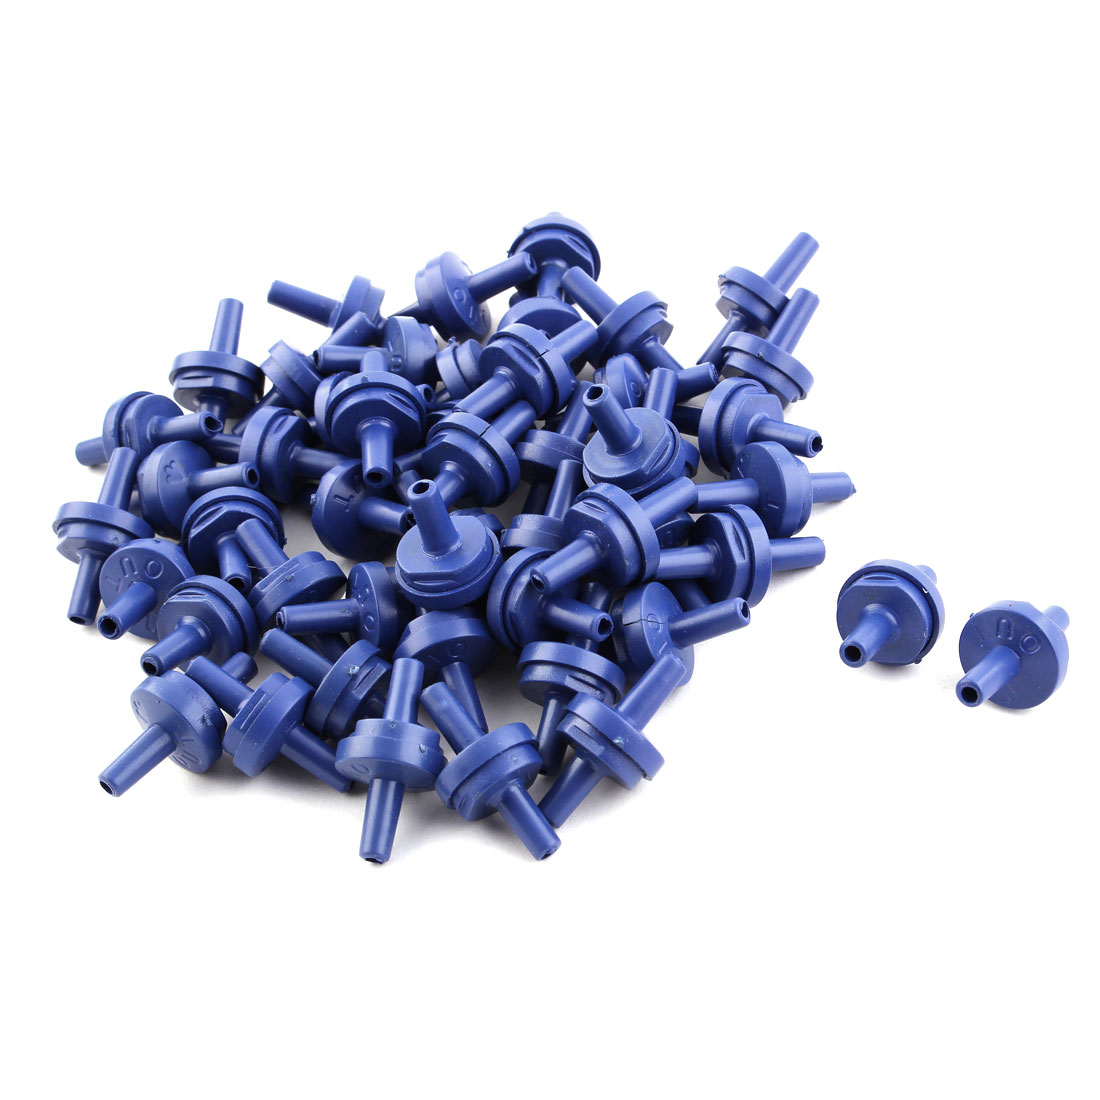 Aquarium Plastic Air Pump Double Head Check Valves Blue 50 PCS